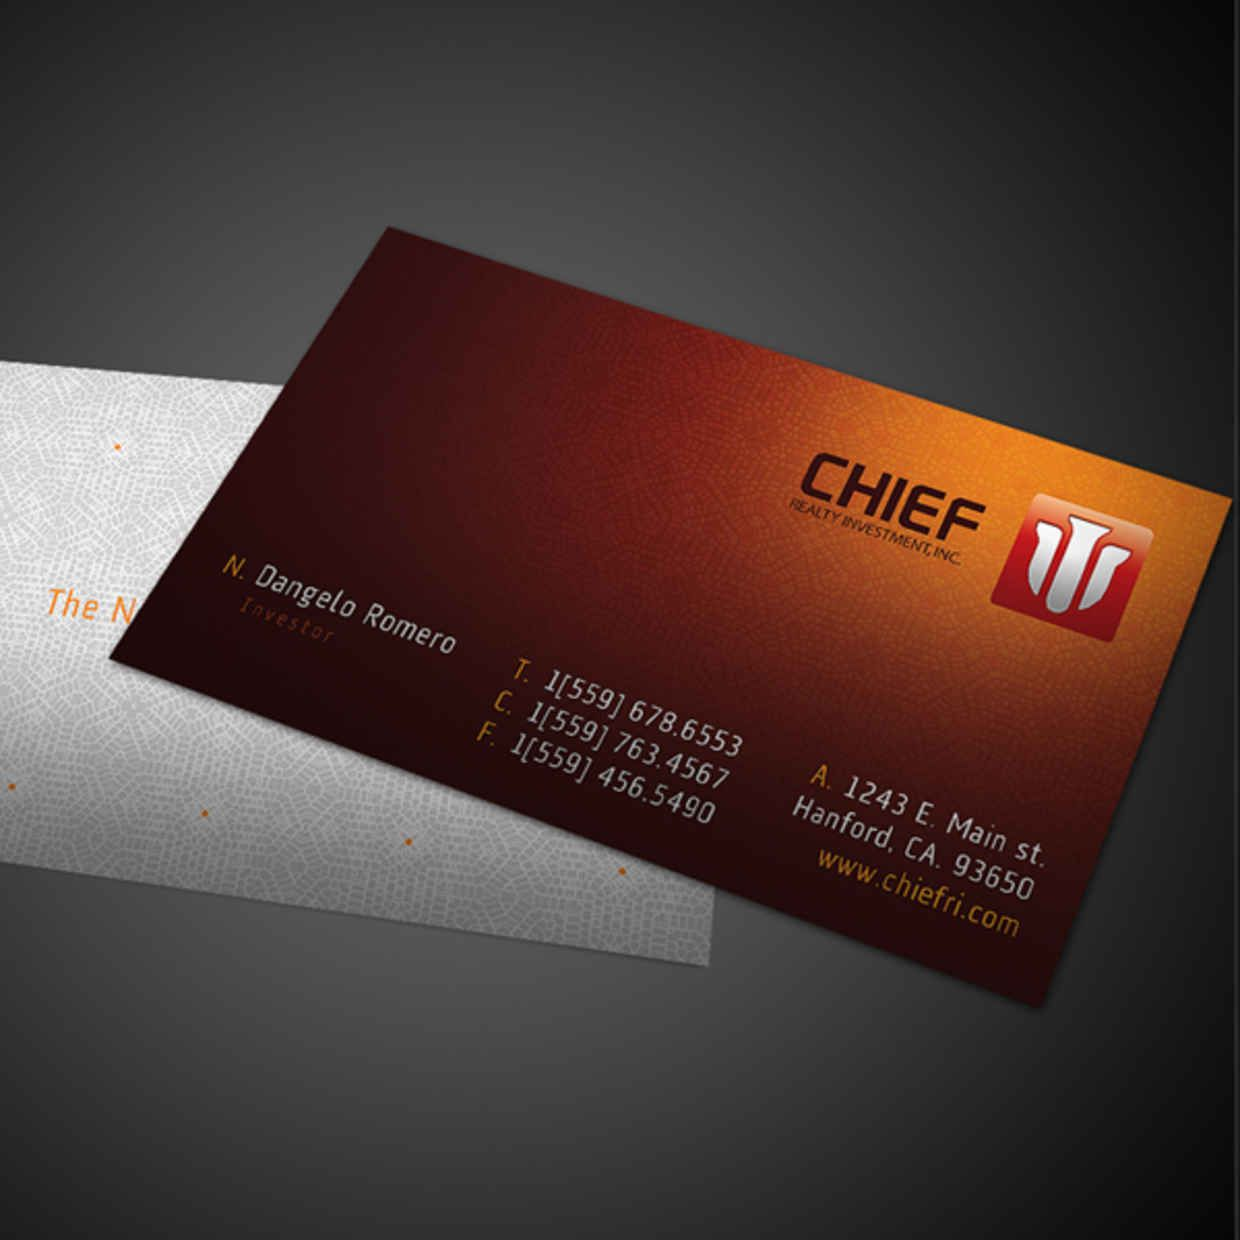 13 creative business card ideas to help you stand out business 13 creative business card ideas to help you stand out business cards black business card and business magicingreecefo Gallery